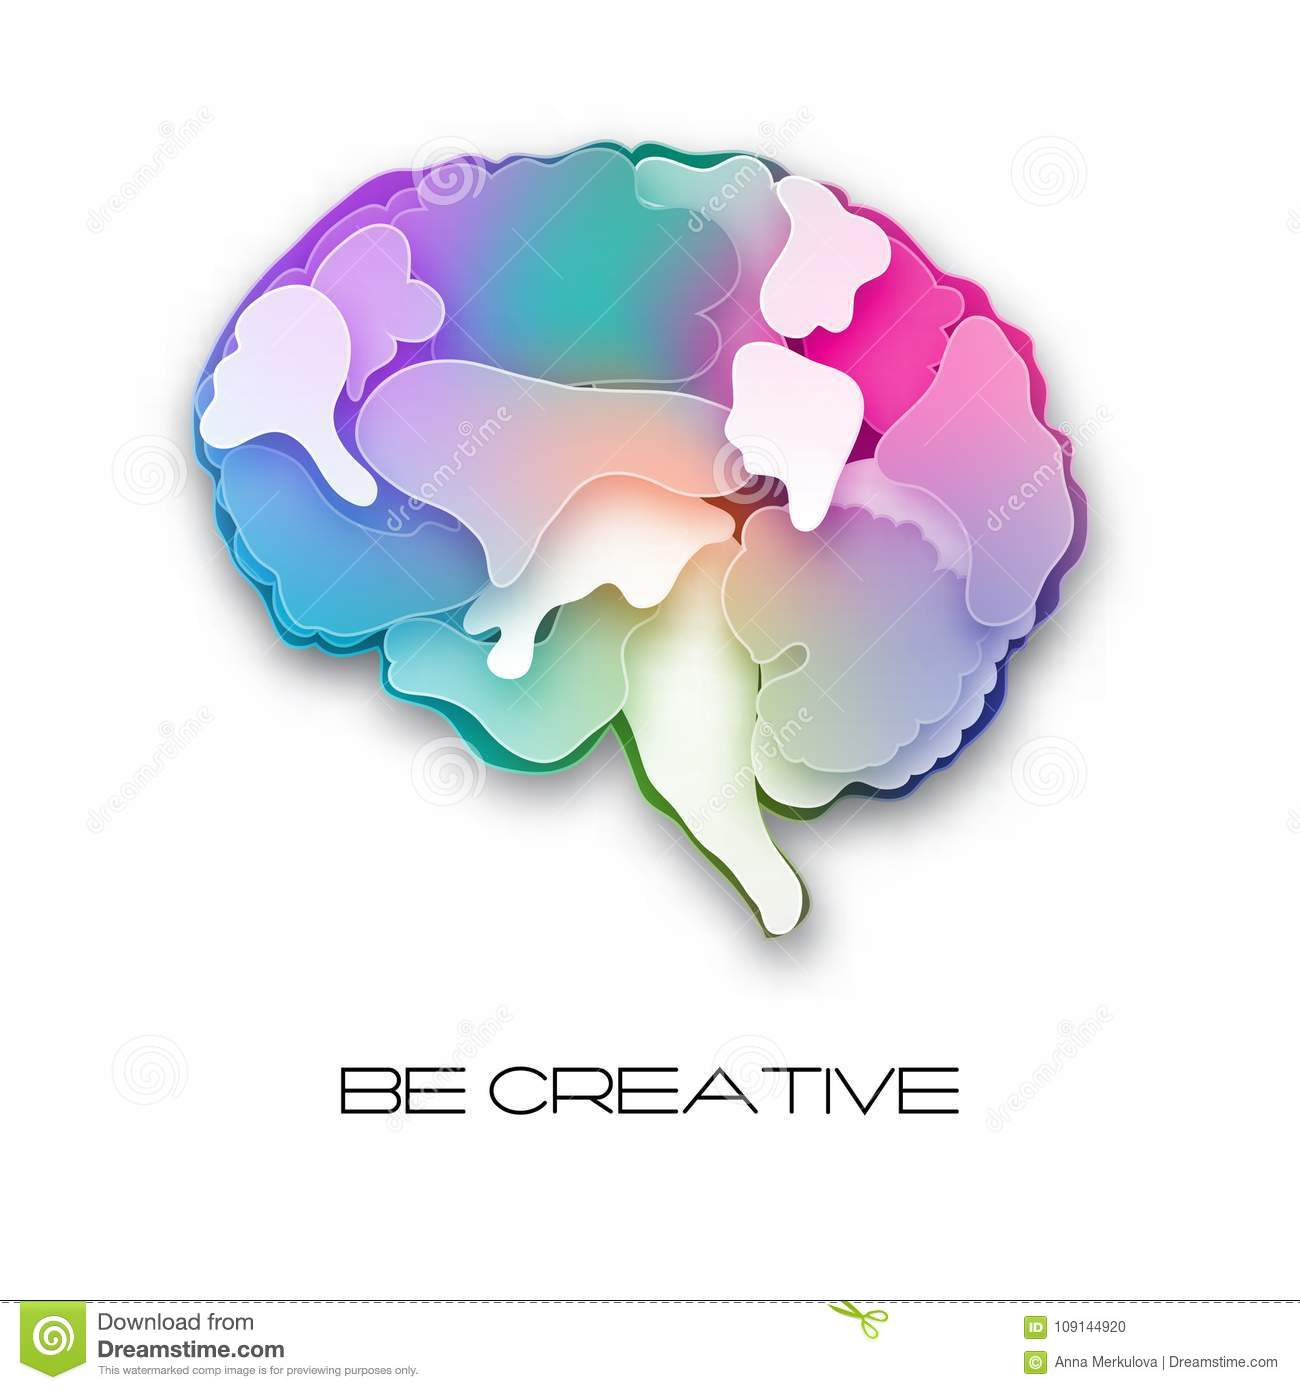 Colorful vector brain illustration, layered cut out